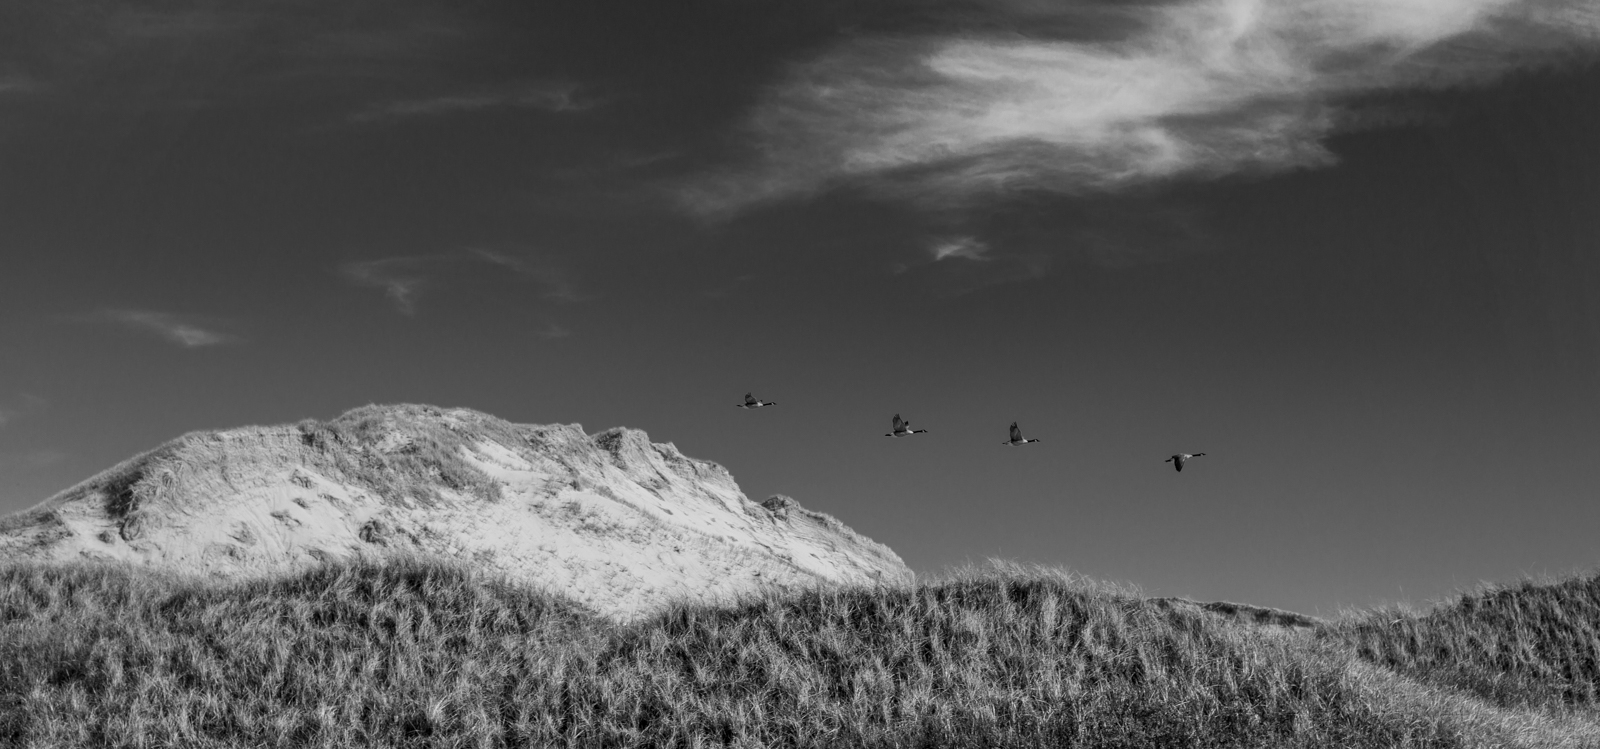 Geese over a sand dune